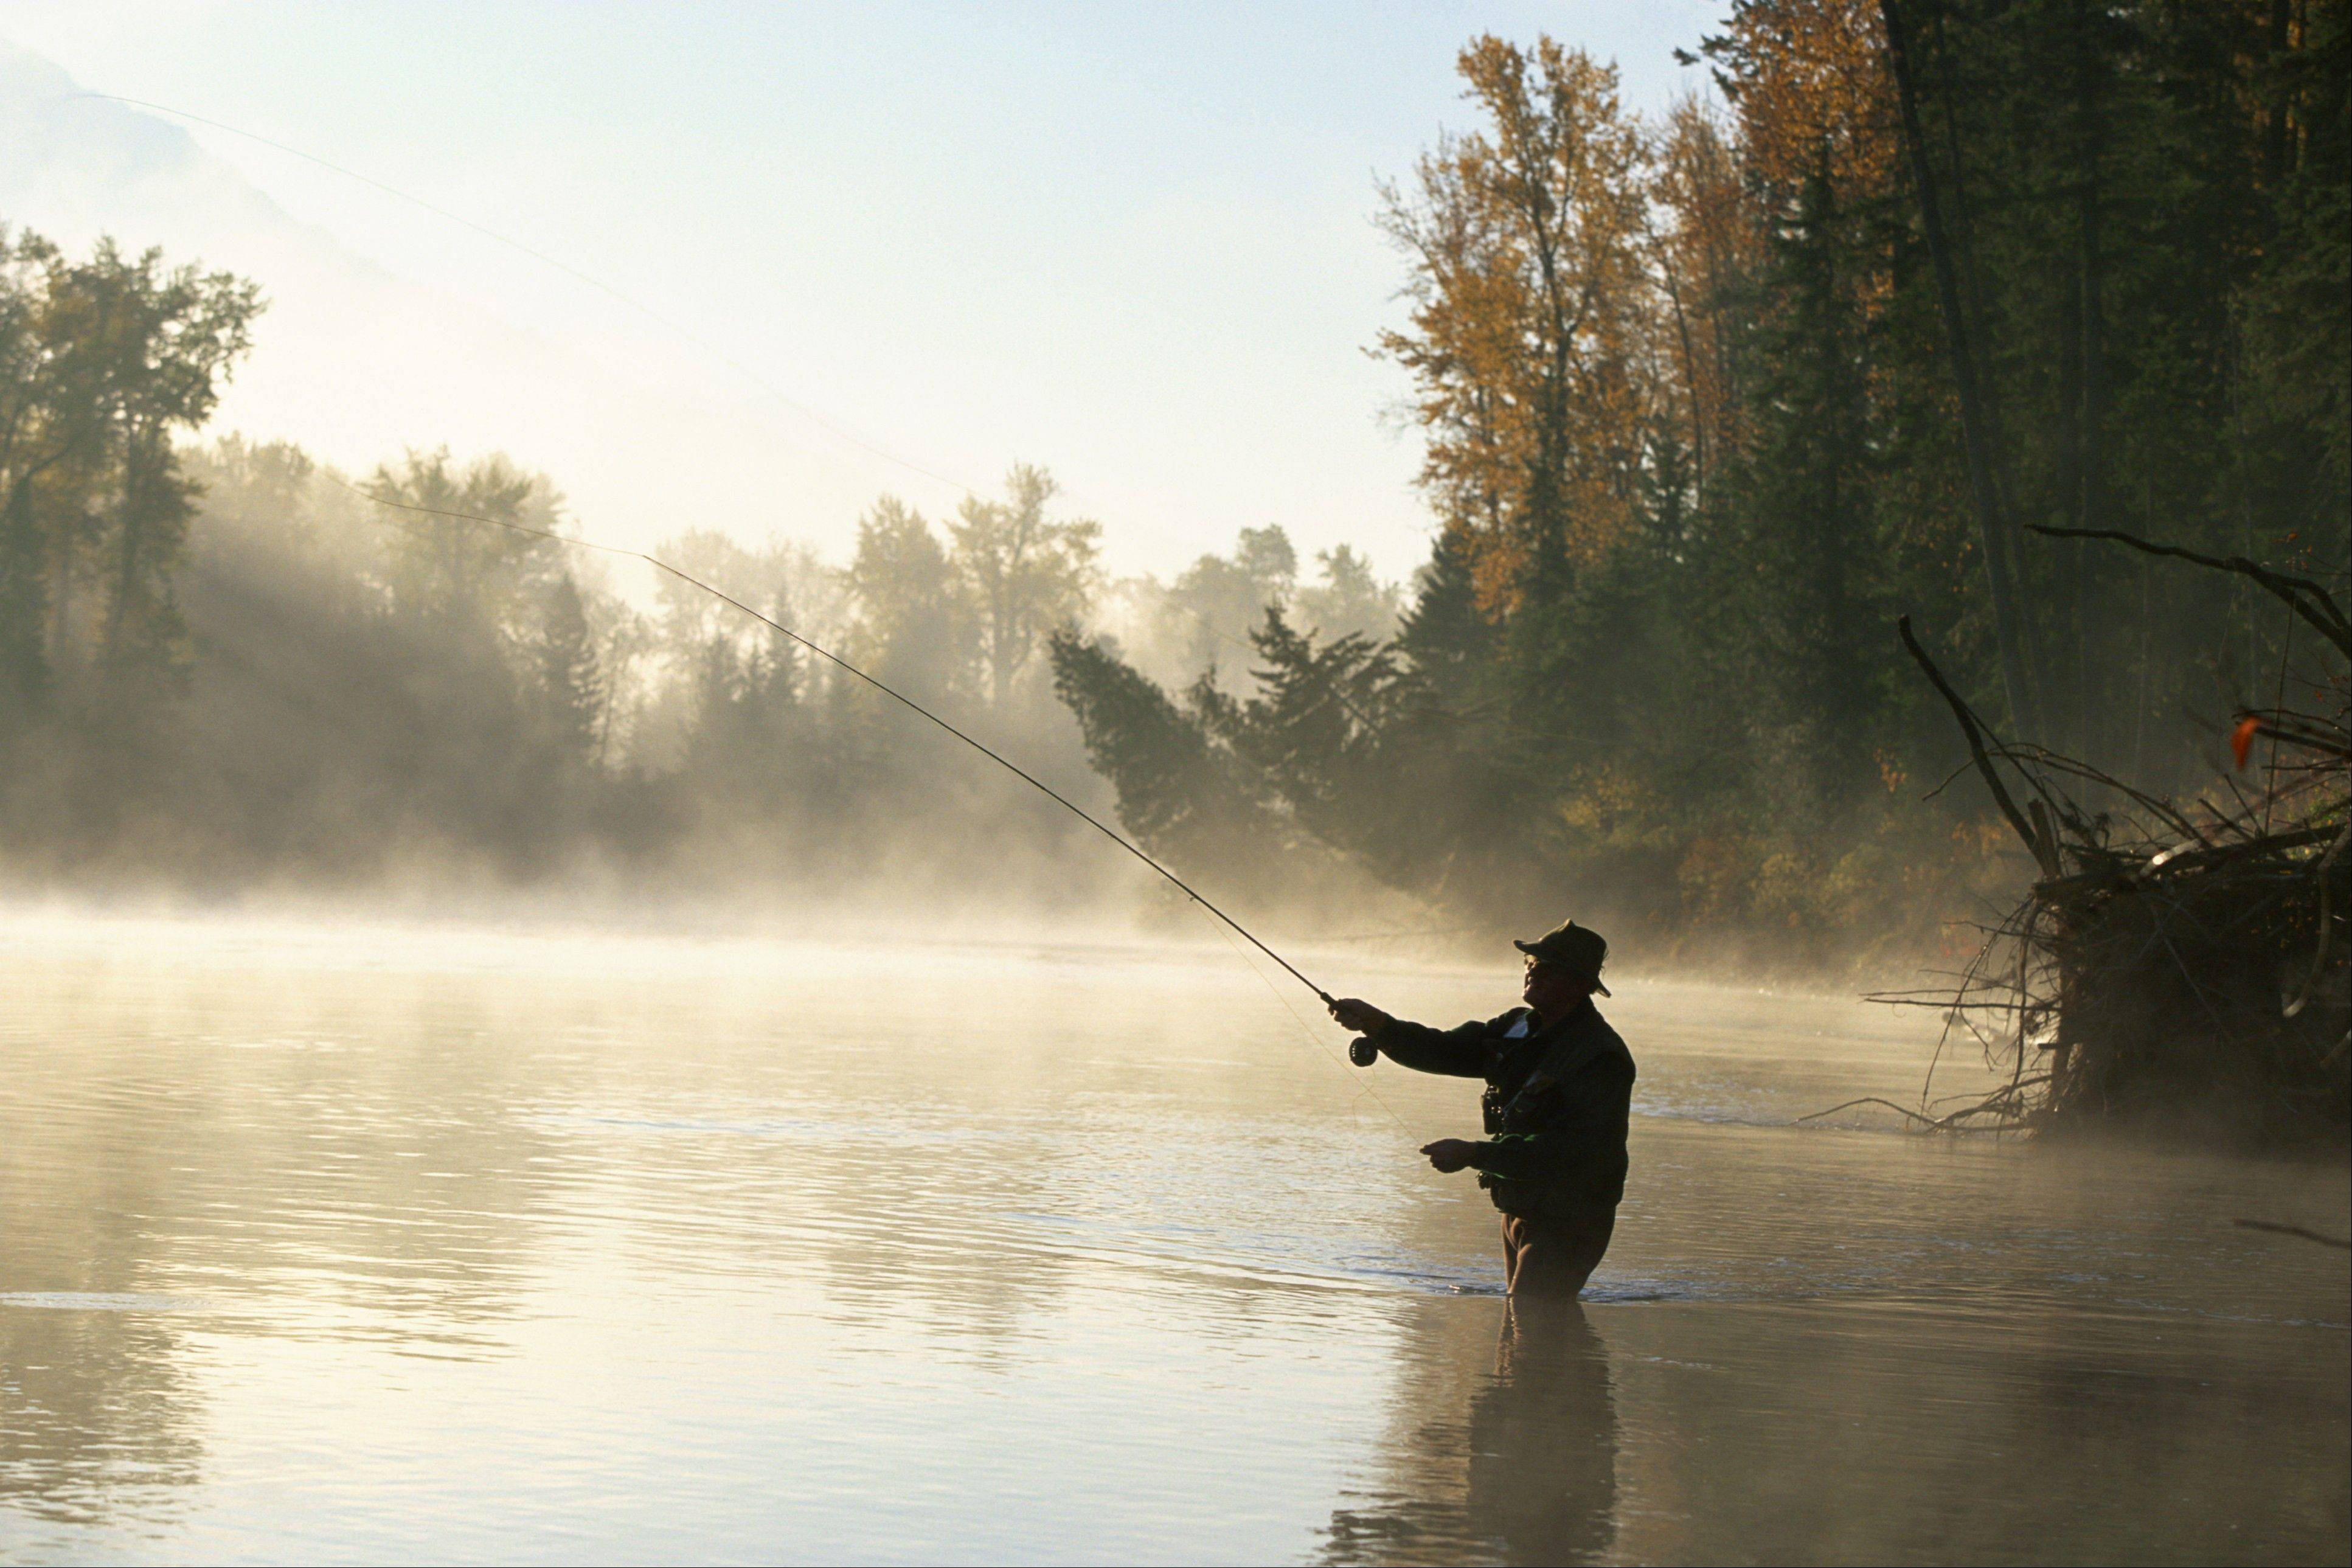 Comstock photos With spring approaching, it's time for anglers to starting preparing for some fly fishing.